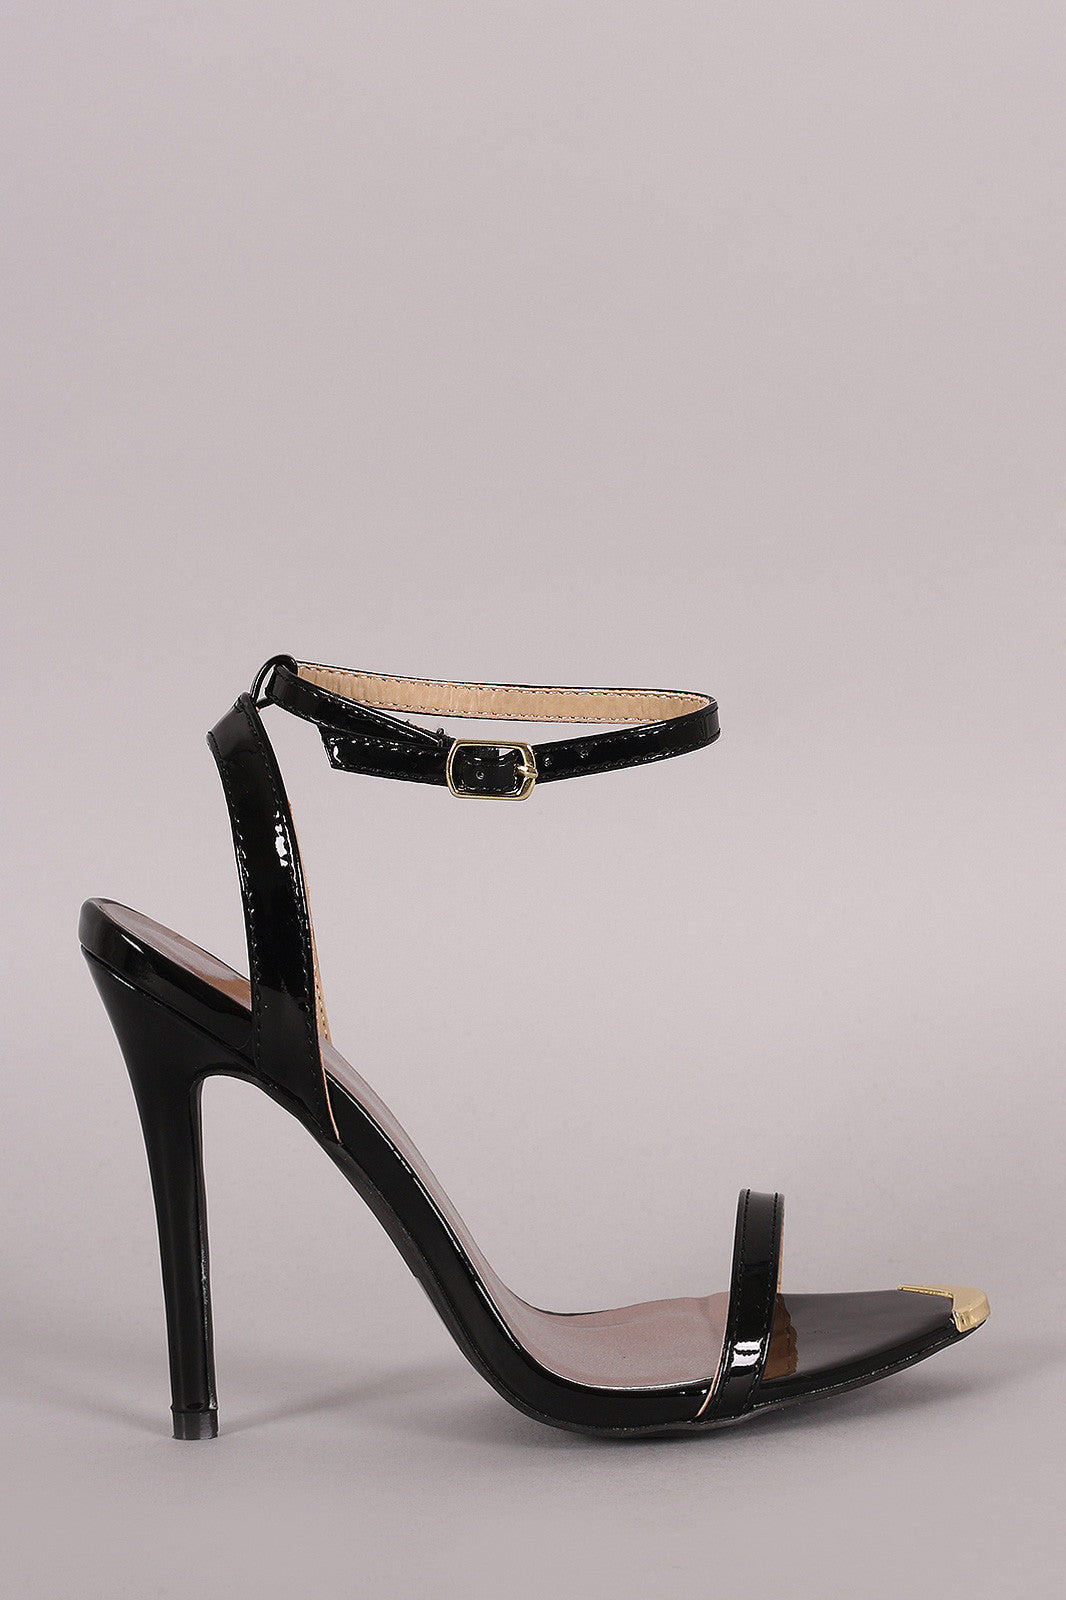 Qupid Patent Gold Tip Ankle Strap Stiletto Heel - Thick 'N' Curvy Shop - 1